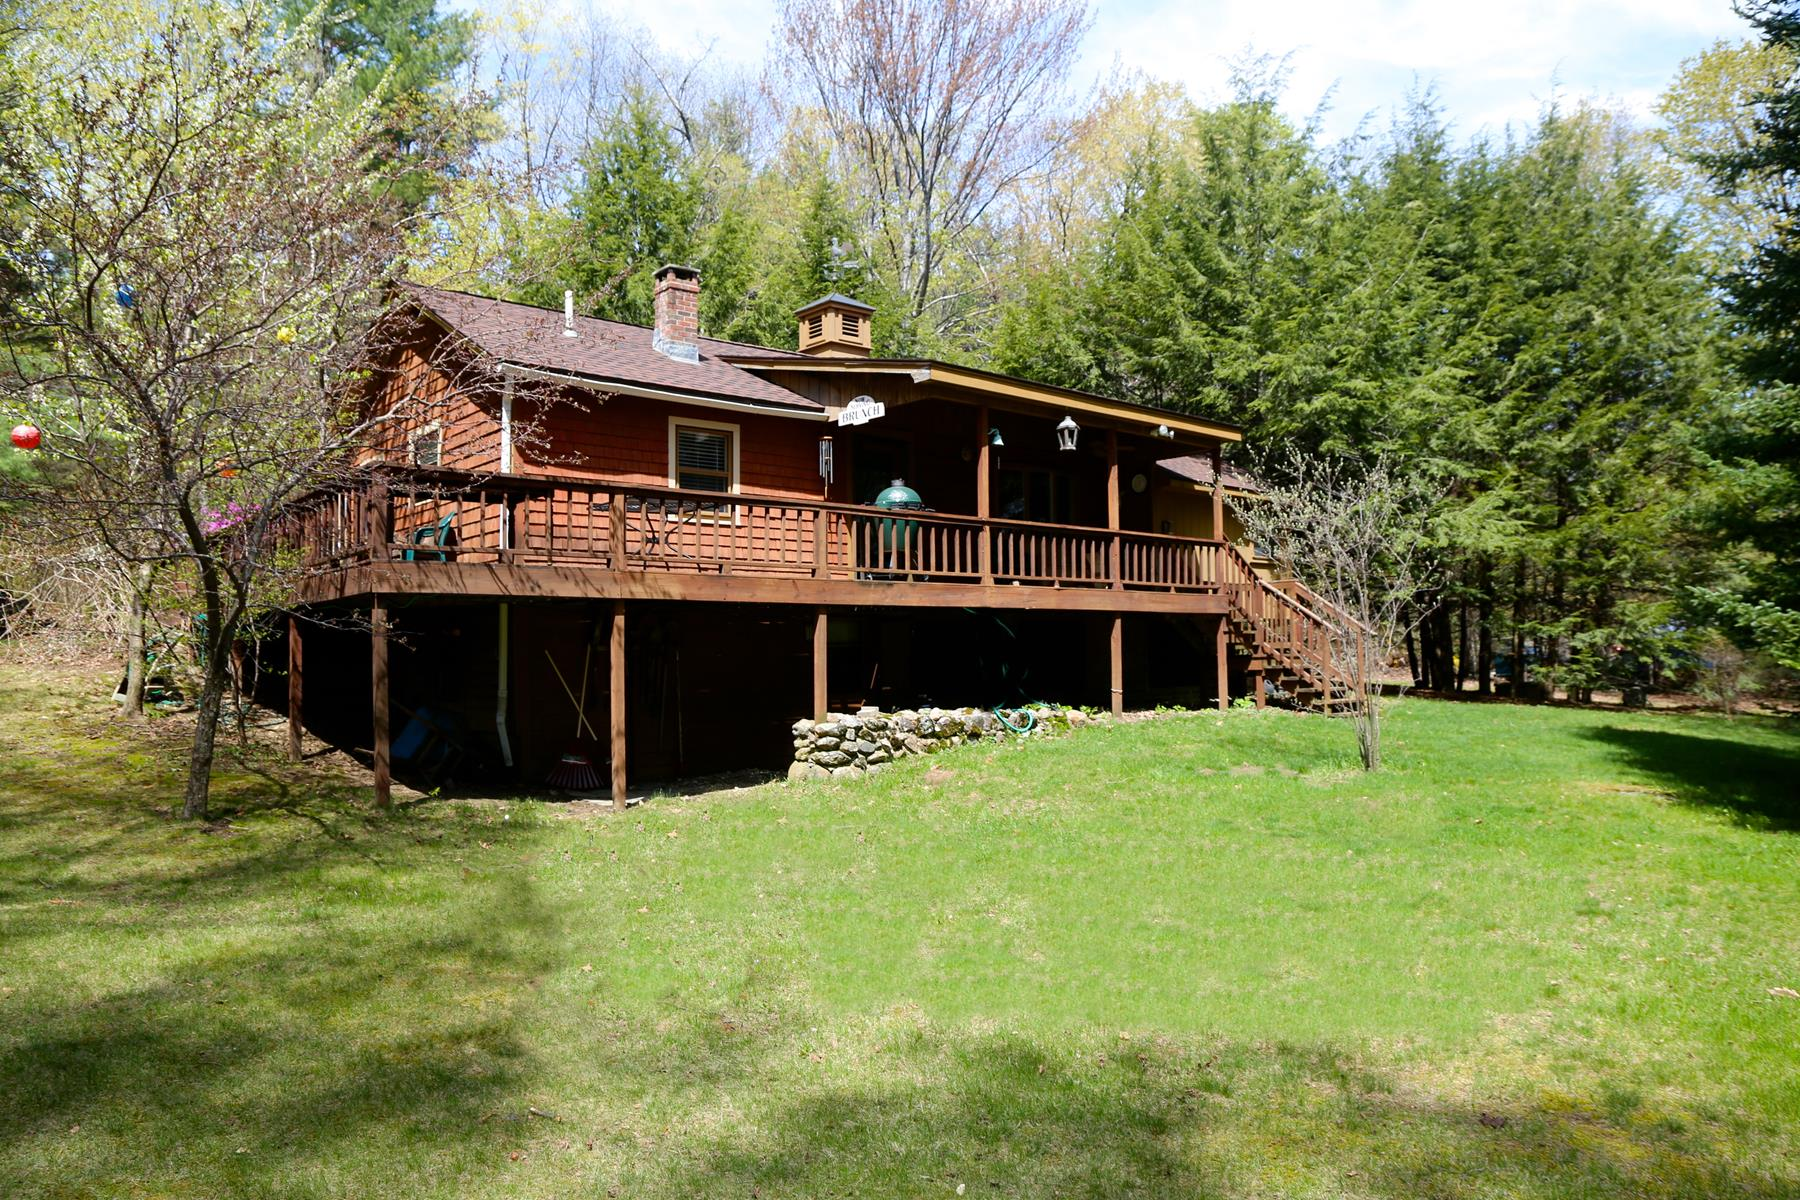 Single Family Home for Sale at 100 Foothills, Sutton Sutton, New Hampshire 03273 United States